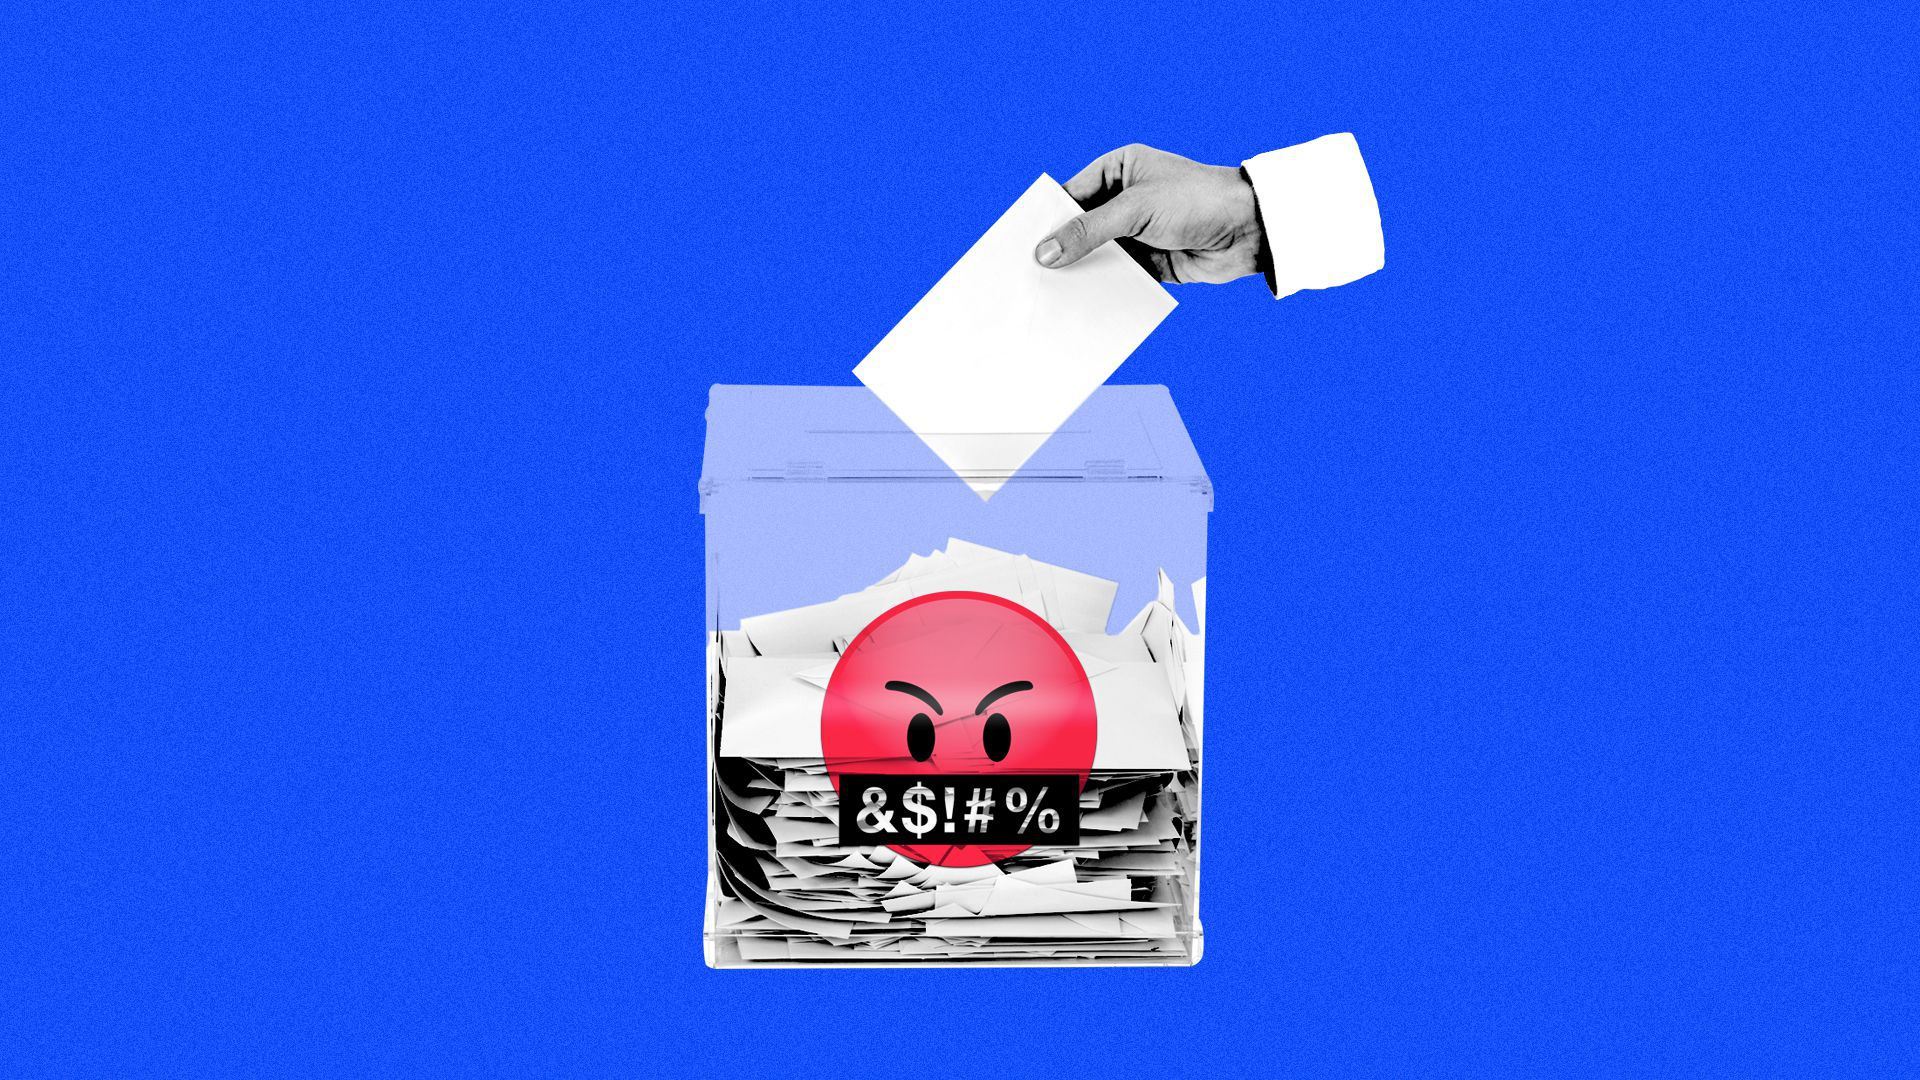 Illustration of a hand putting a message into a complaint box that has a swearing emoji on the front.